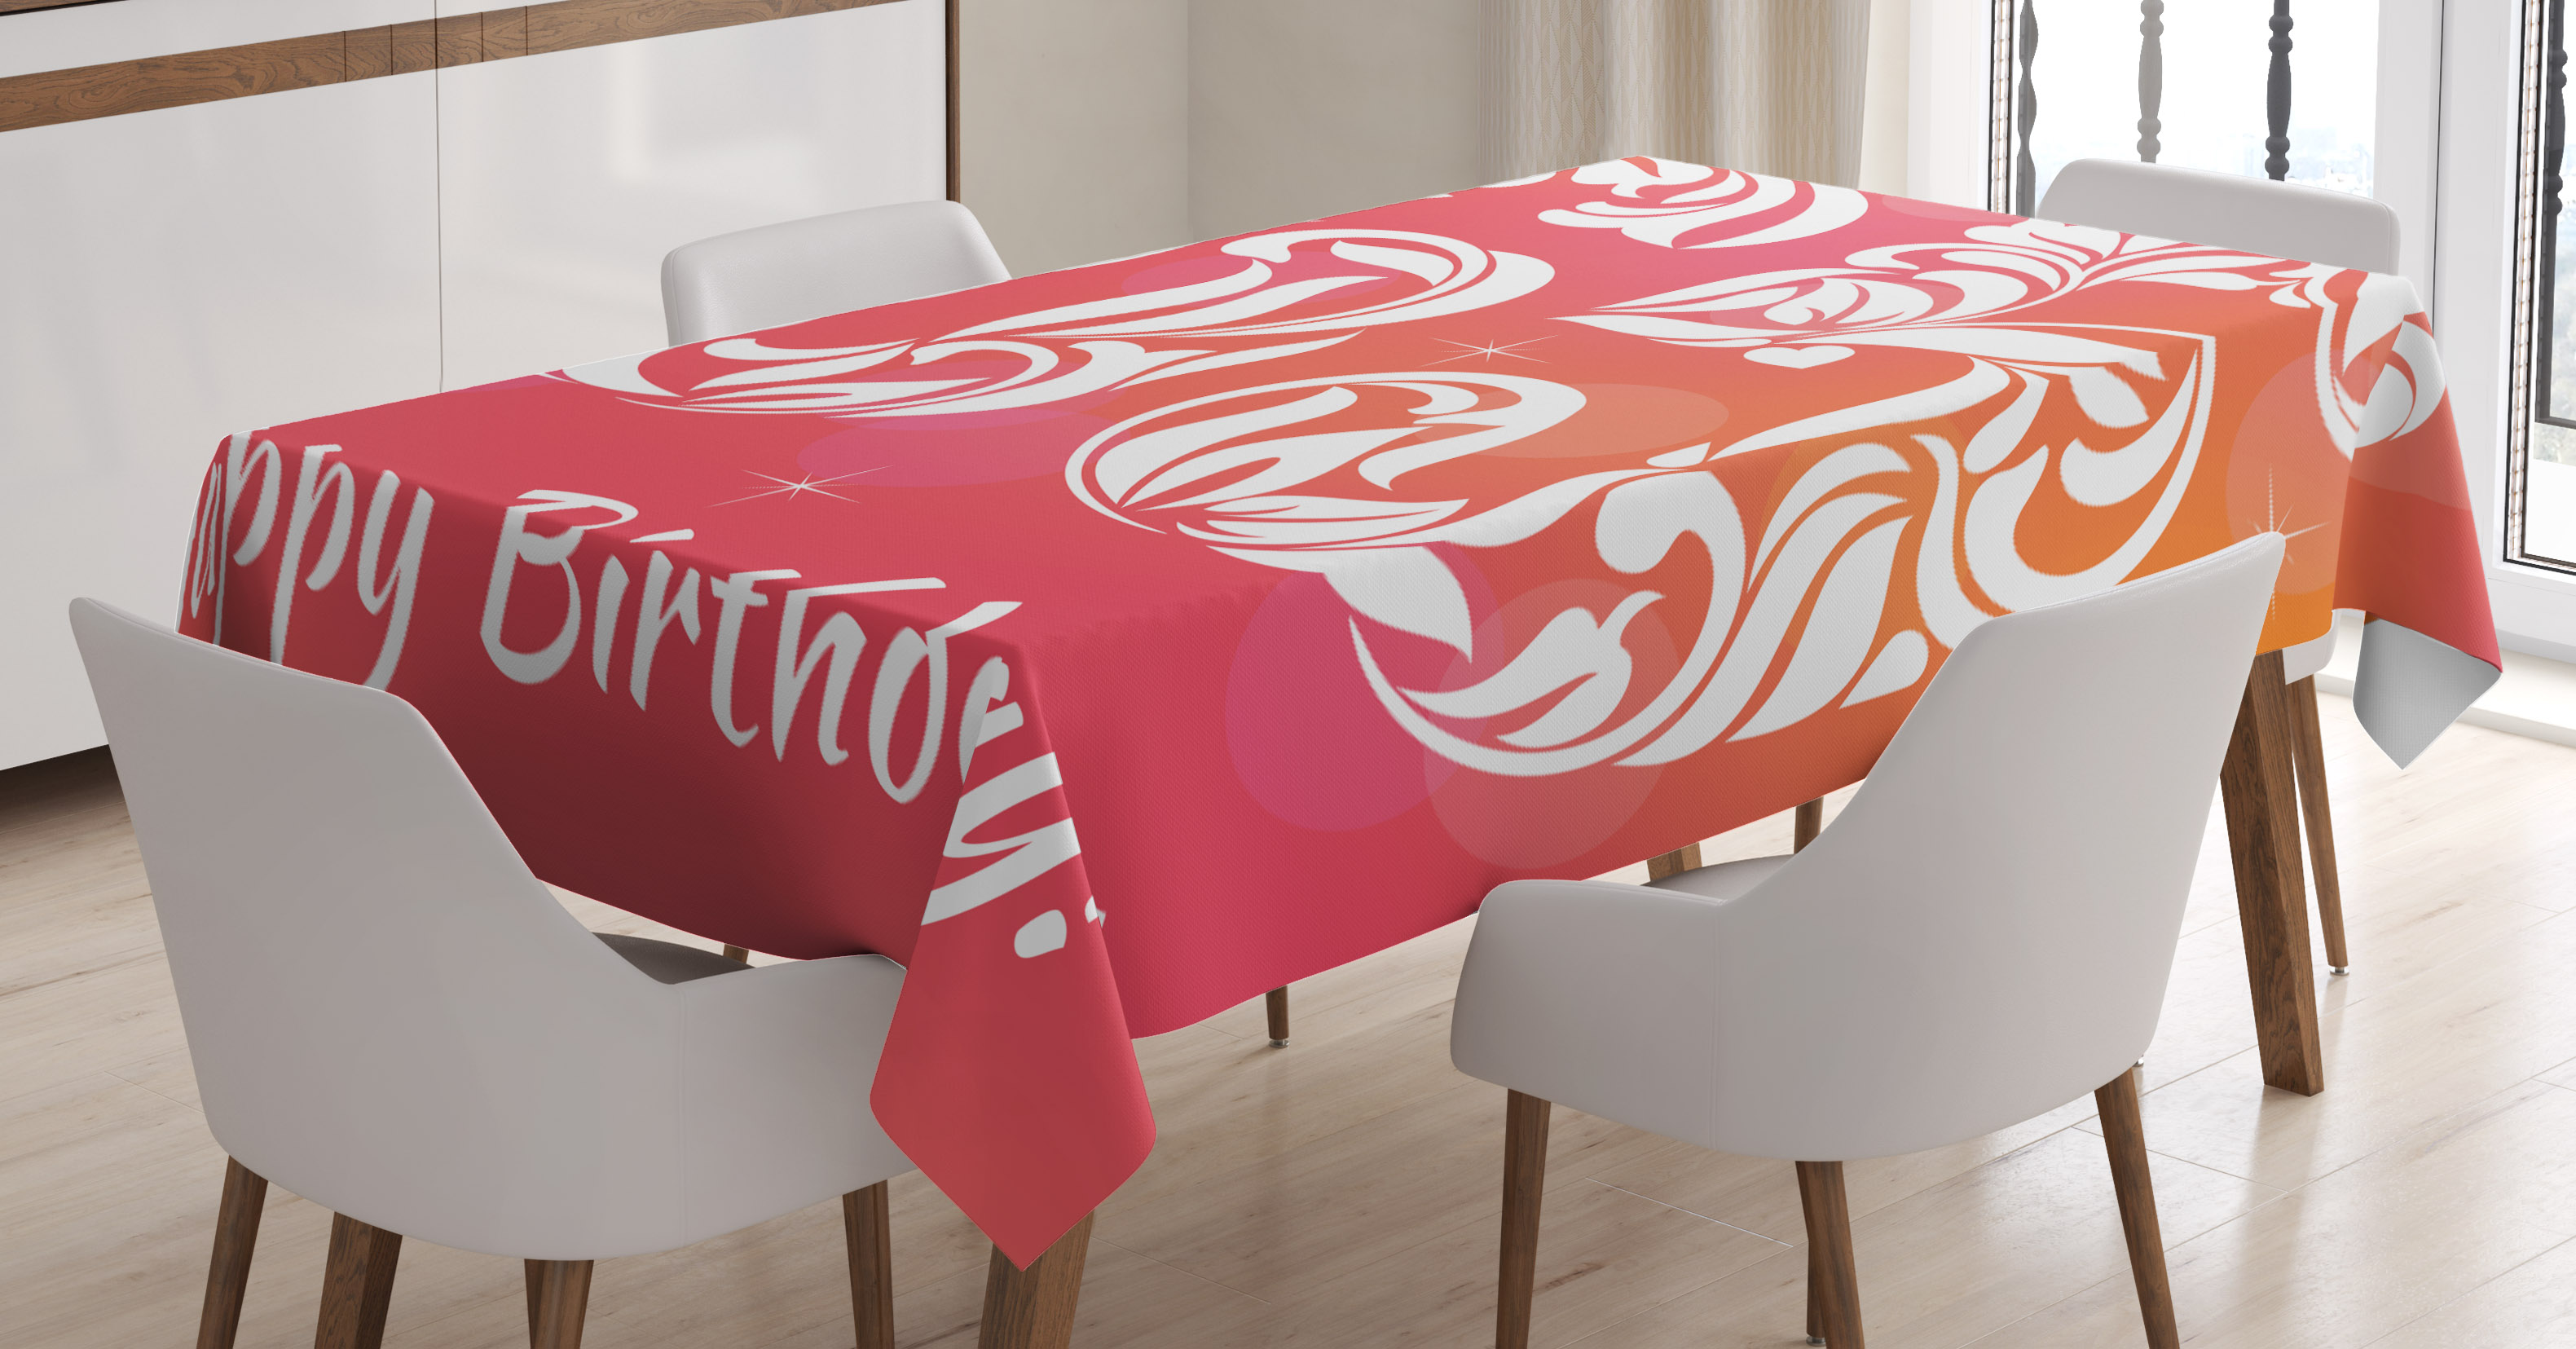 65th Birthday Decorations Tablecloth Greeting Card Inspired Design With Decorative Font Swirls Rectangular Table Cover For